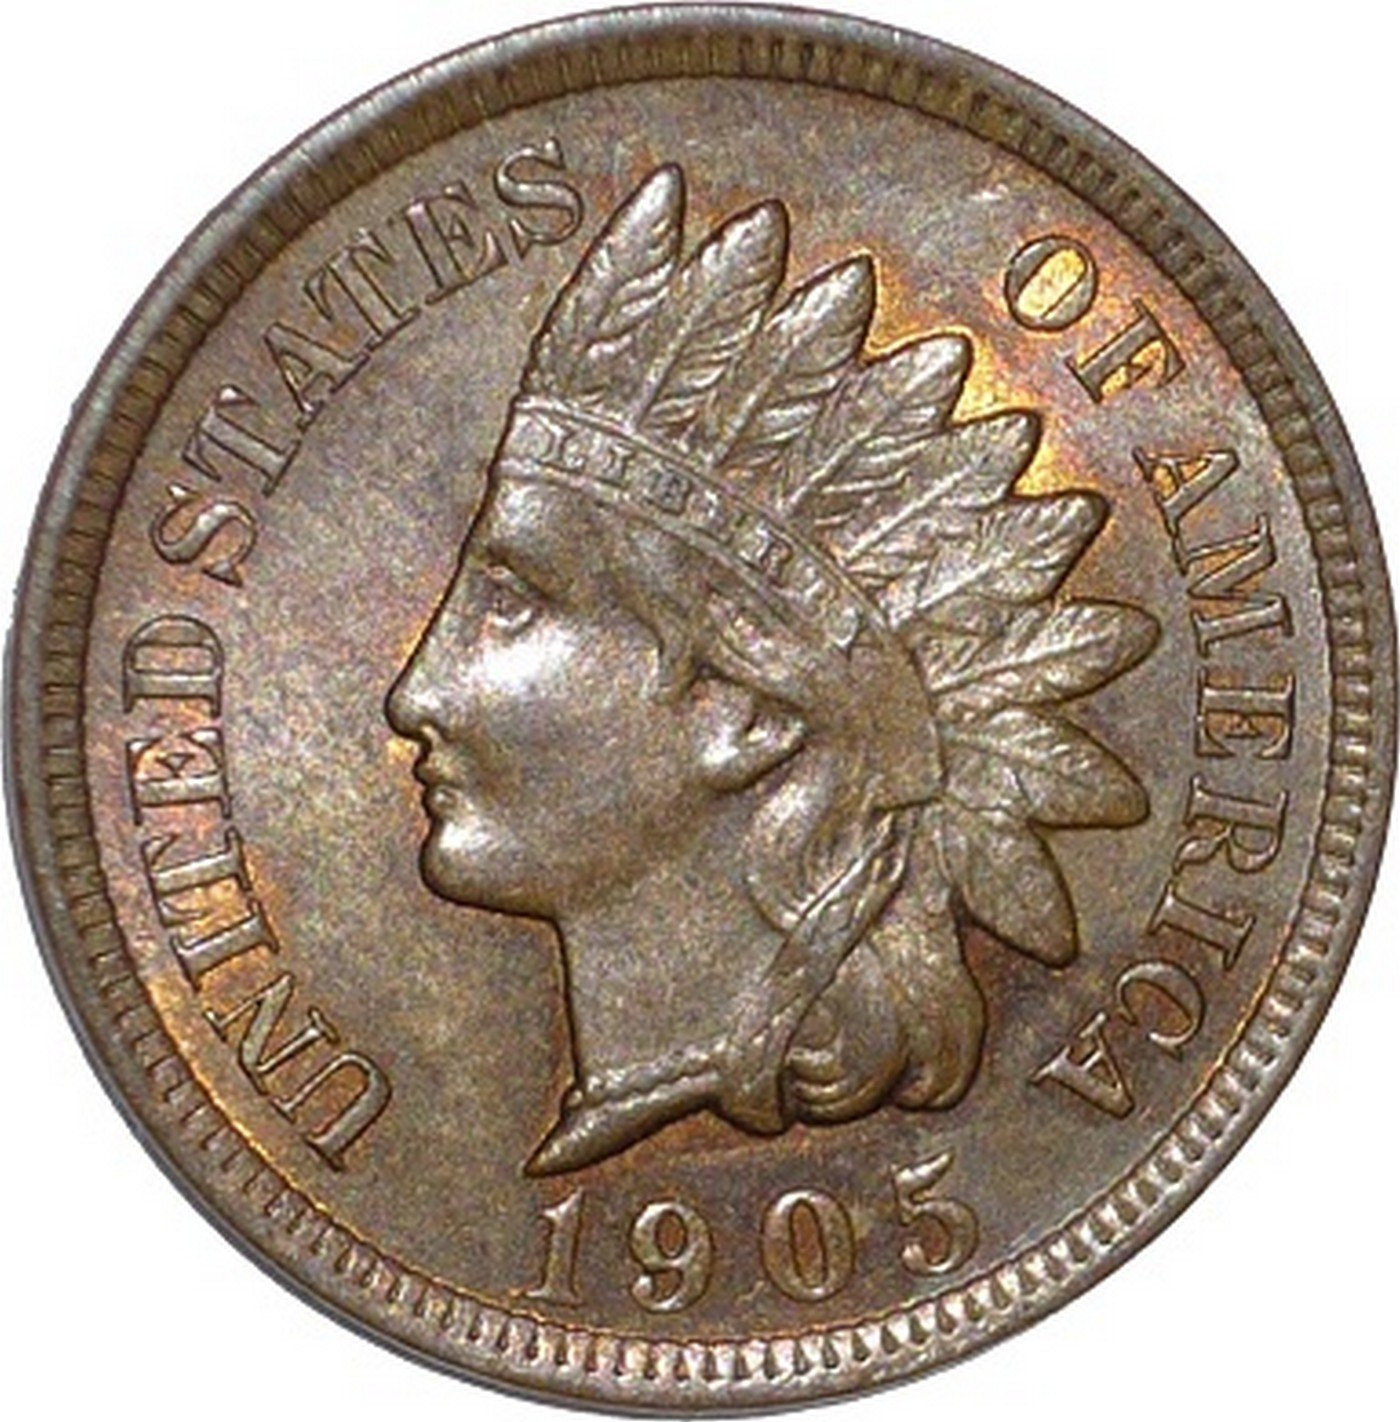 1905 RPD-020 - Indian Head Penny - Photo by David Poliquin